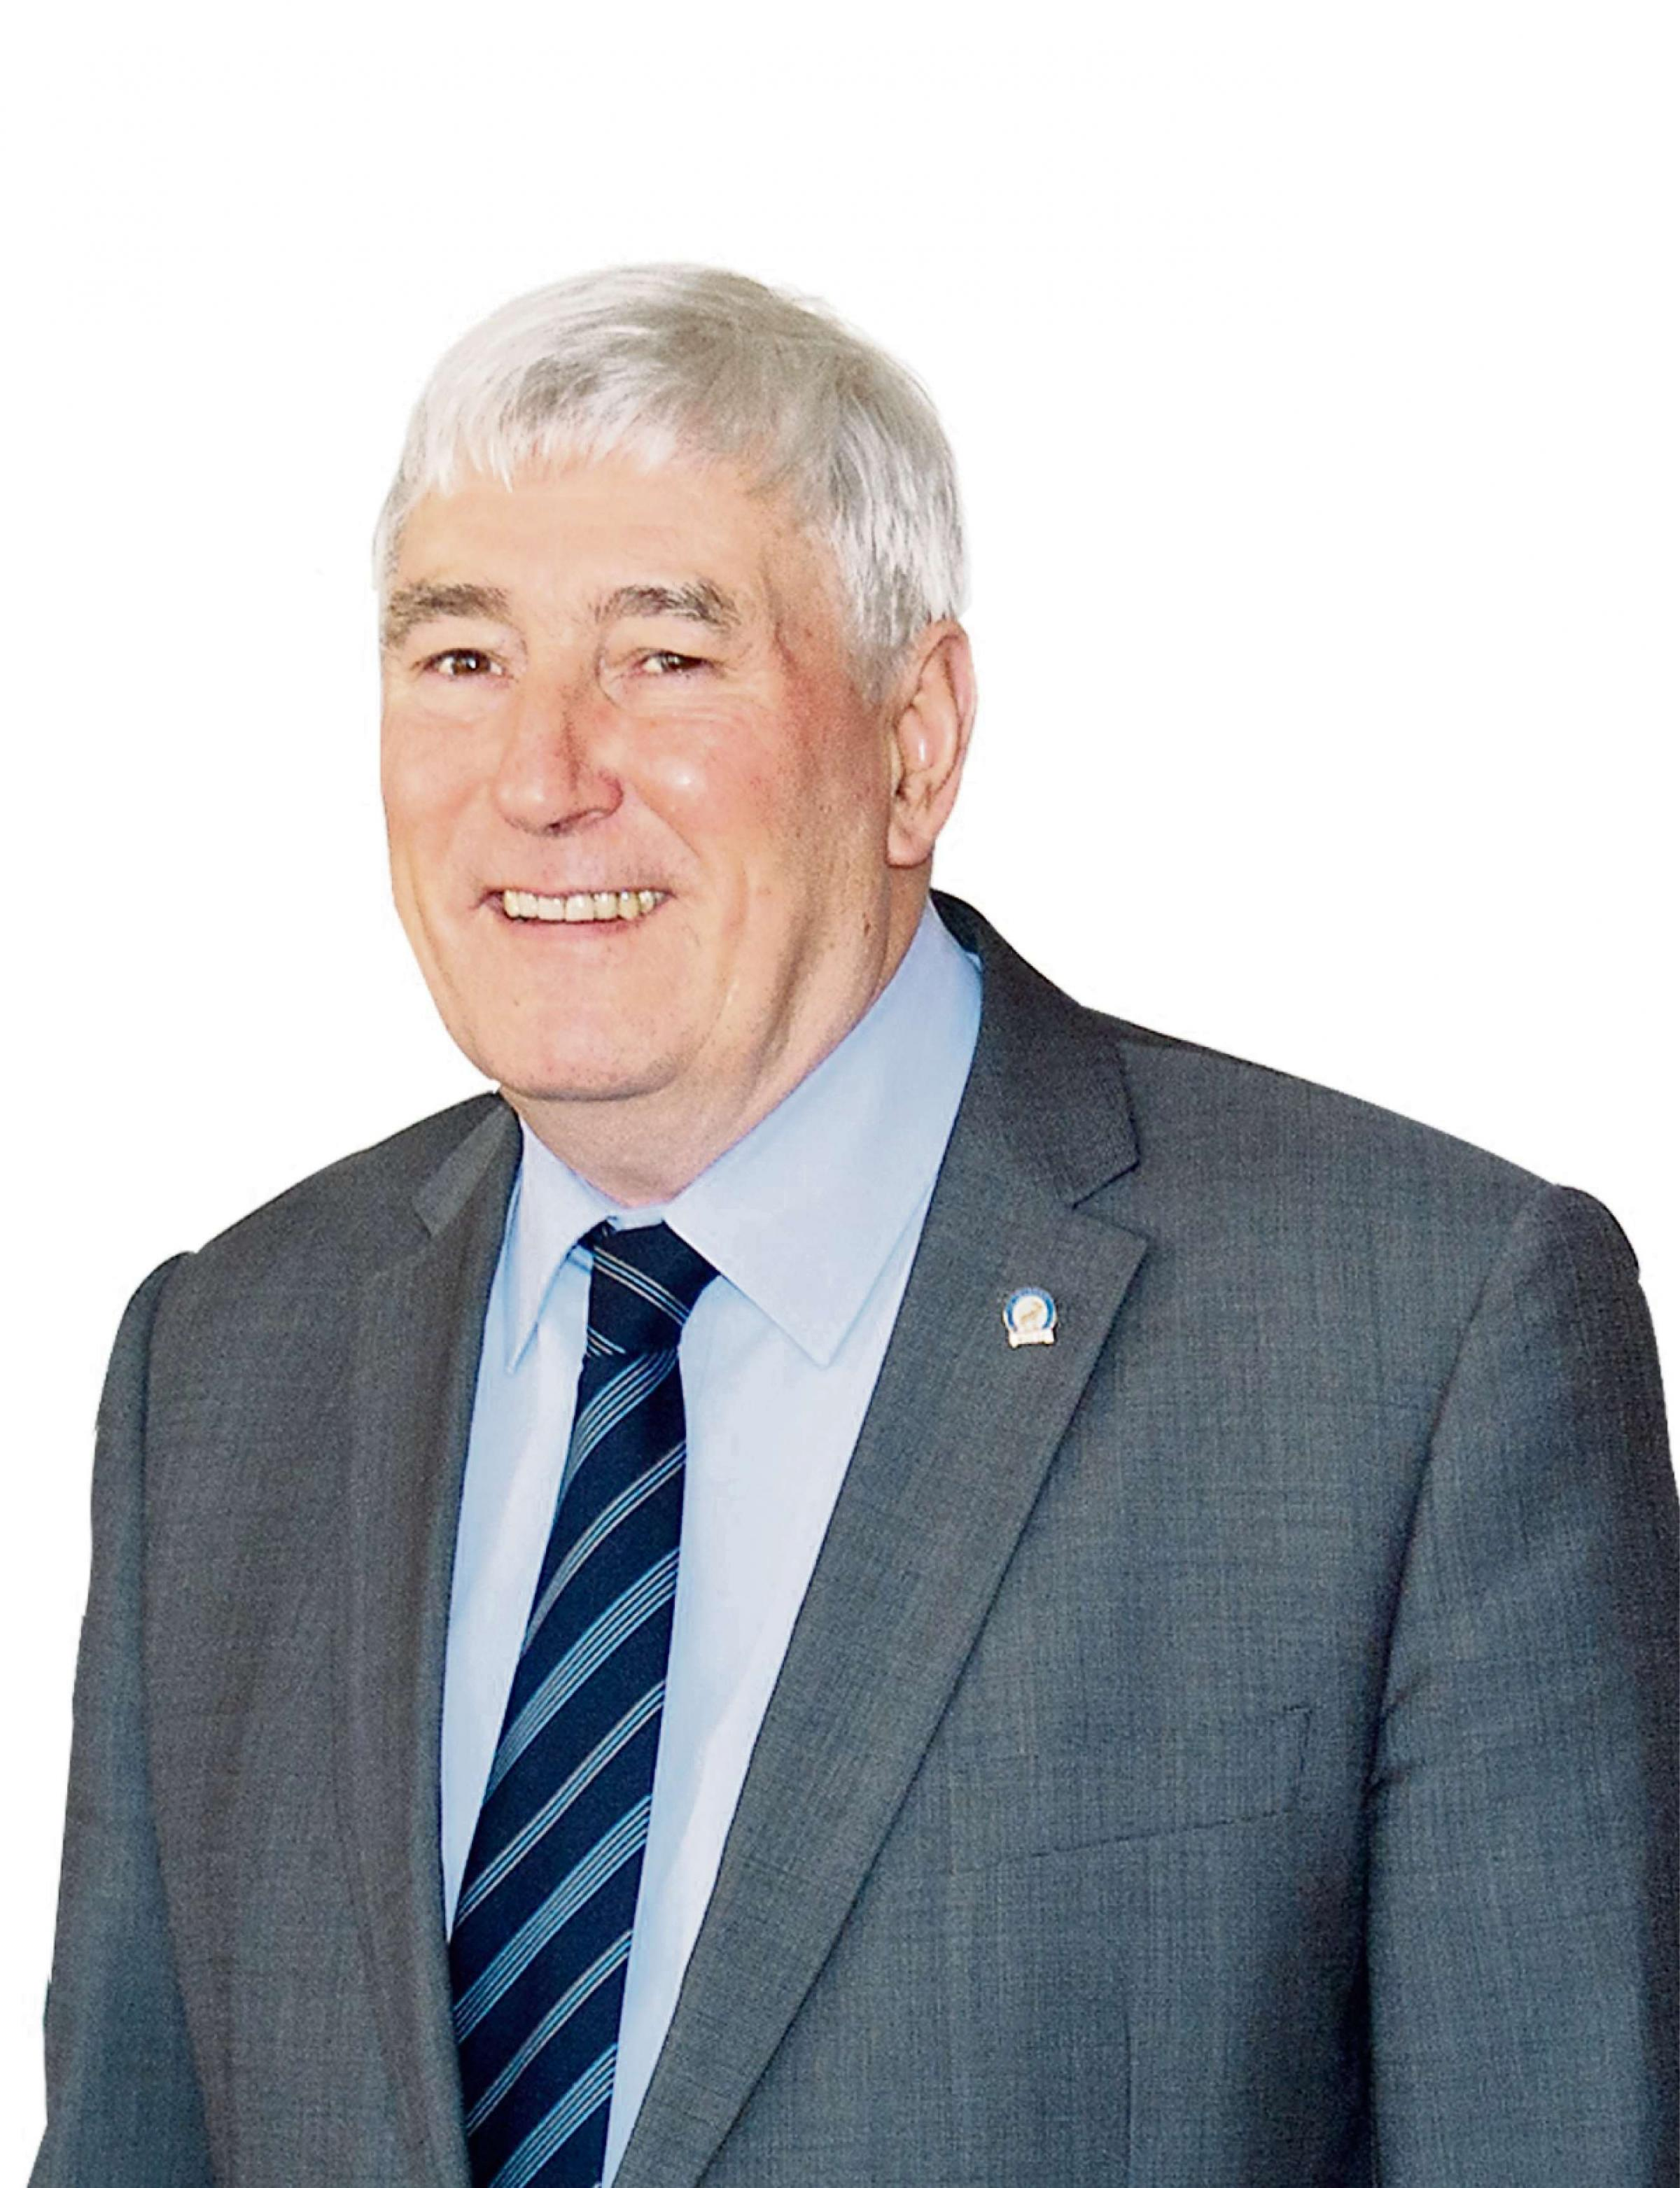 ELECTED: Cllr Bernard Willis will replace current mayor Mostyn Lewis on May 8, at Blaenau Gwent council's annual general meeting.